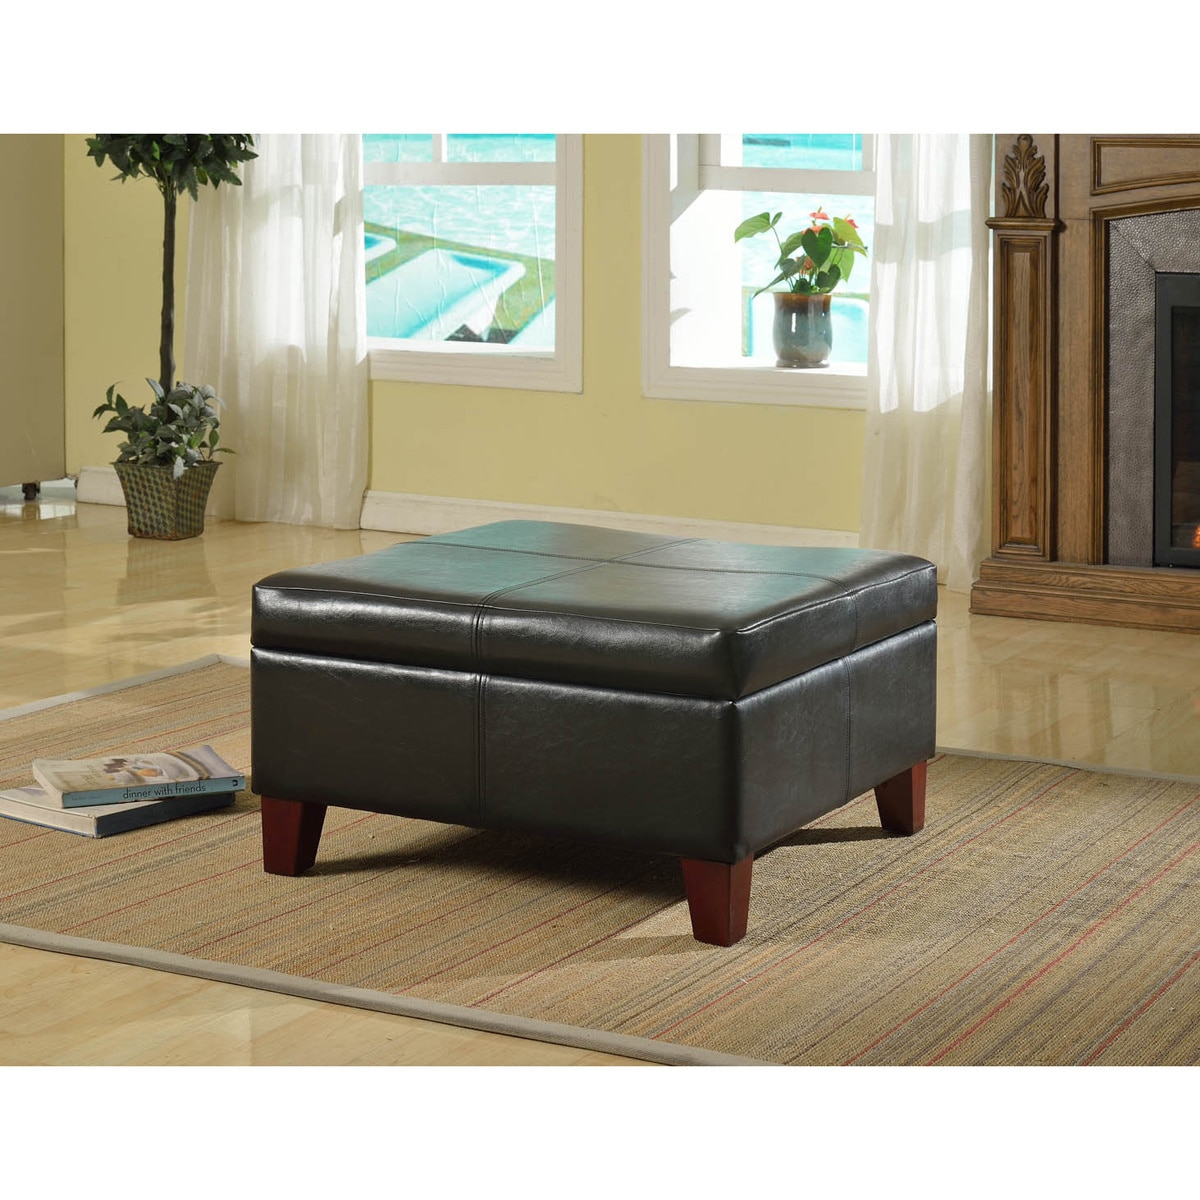 HomePop Luxury Large Black Faux Leather Storage Ottoman Table Family Room